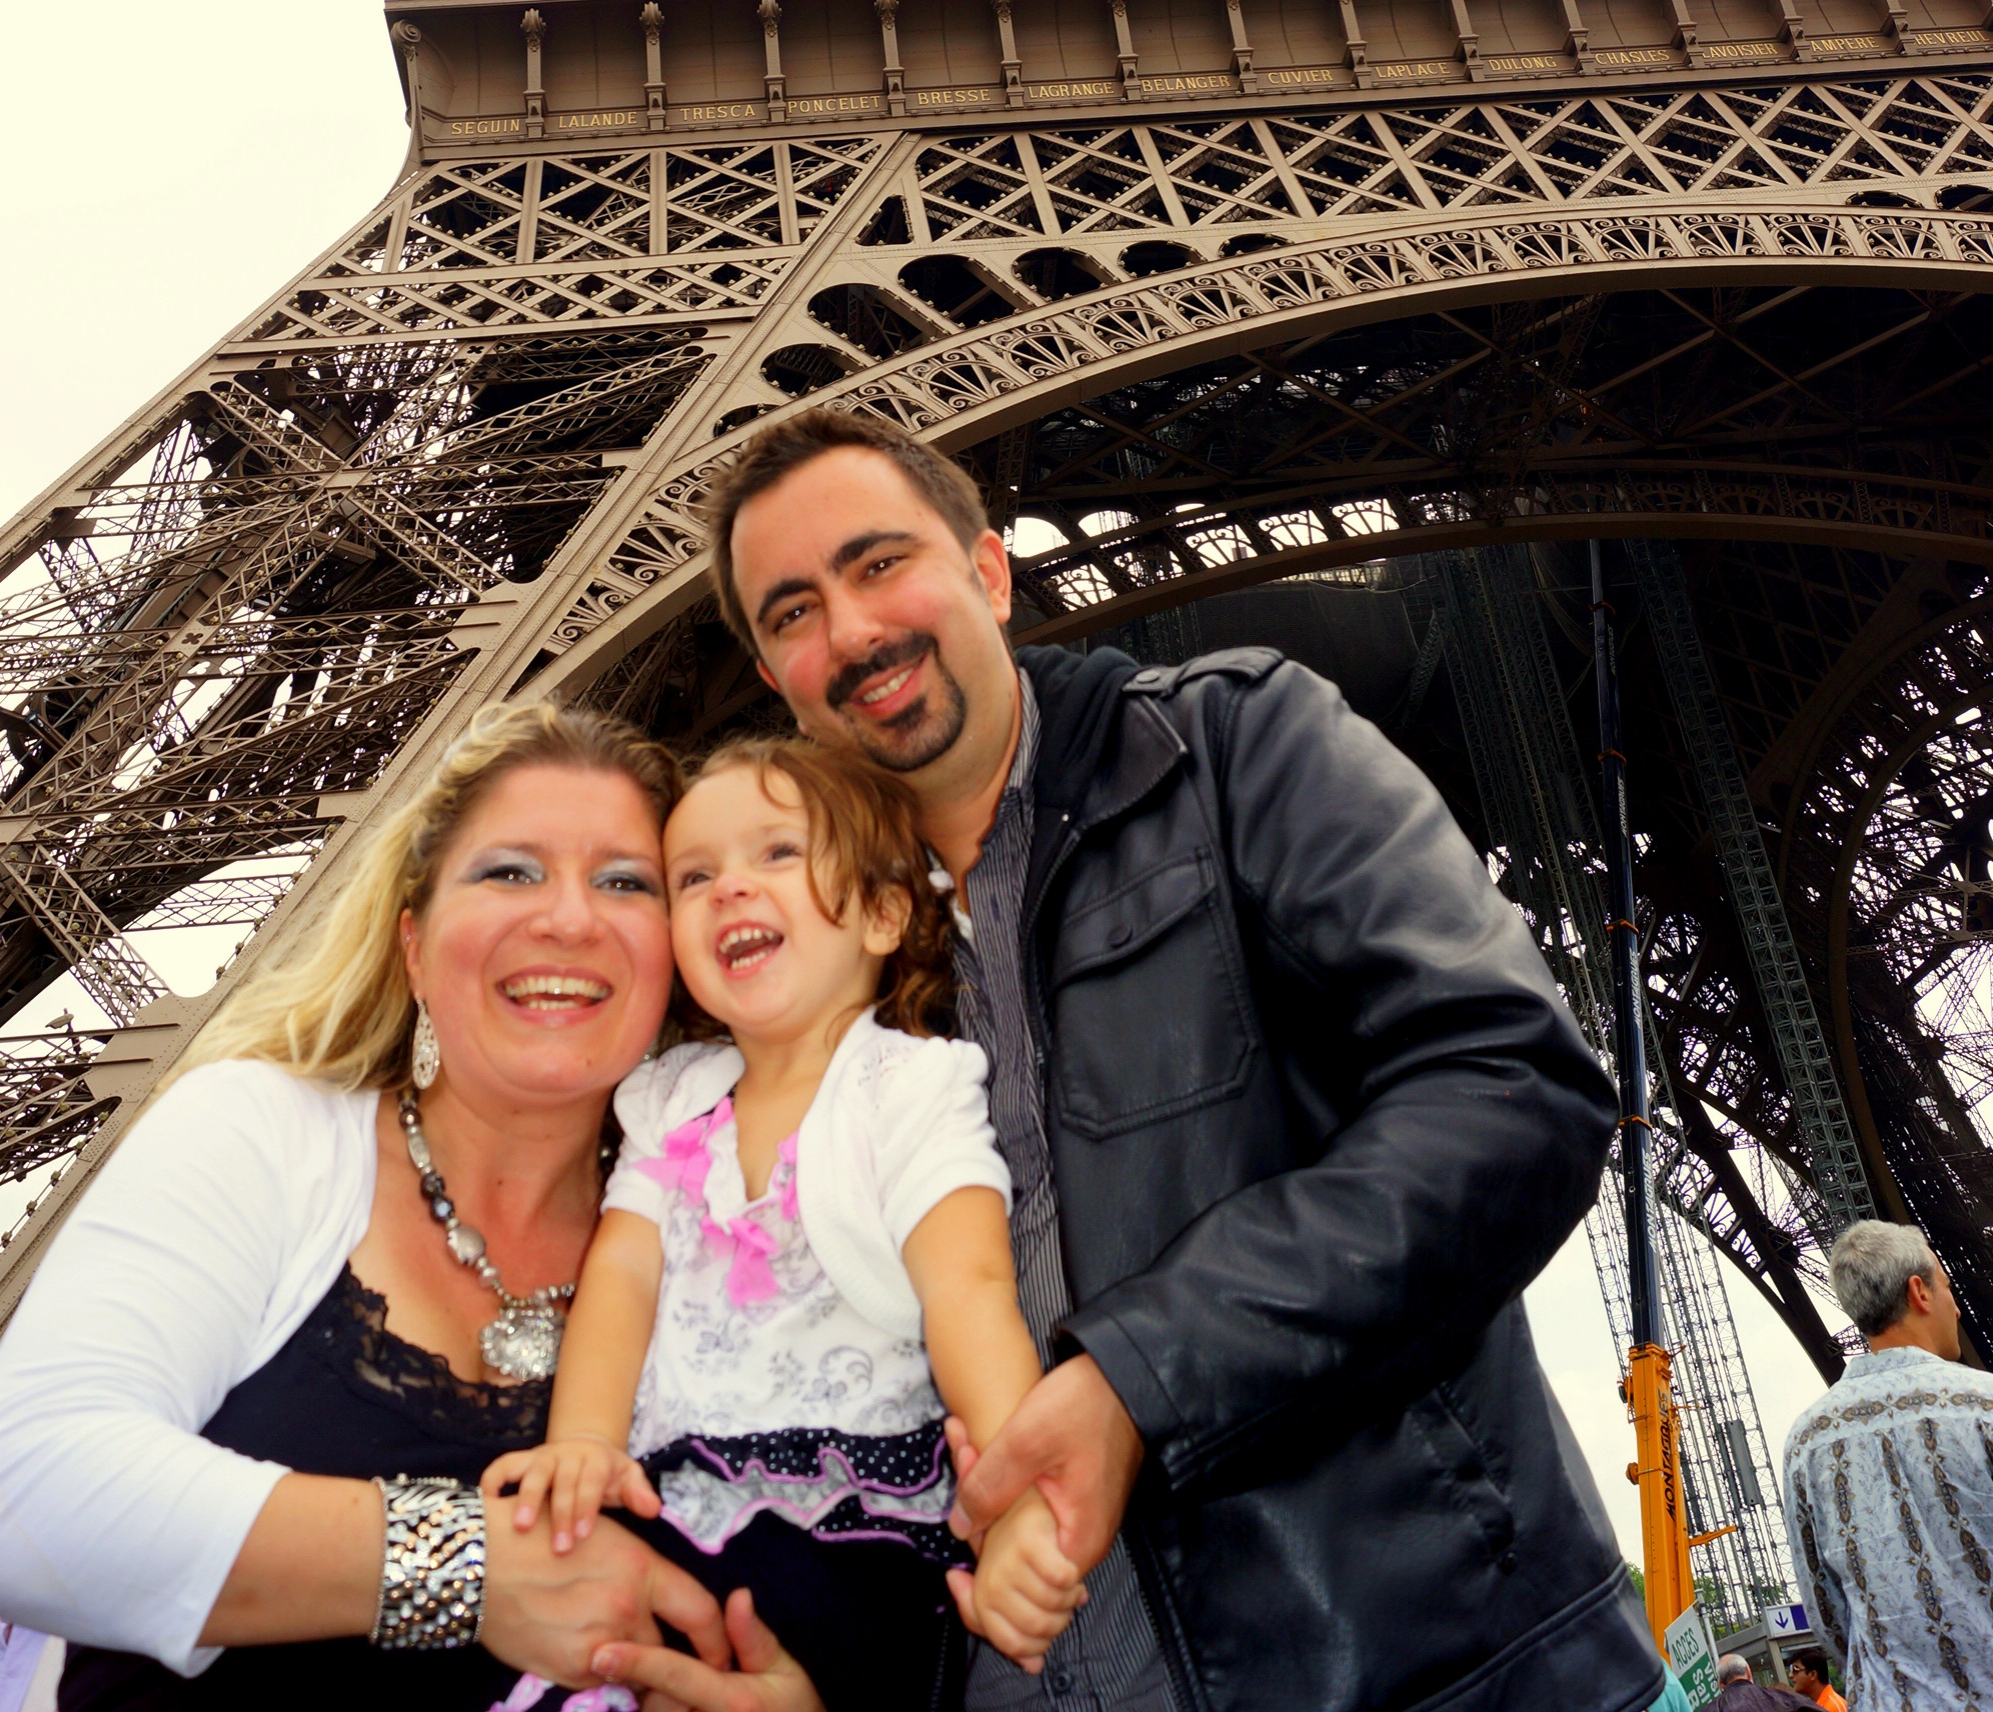 At the Eifel Tower